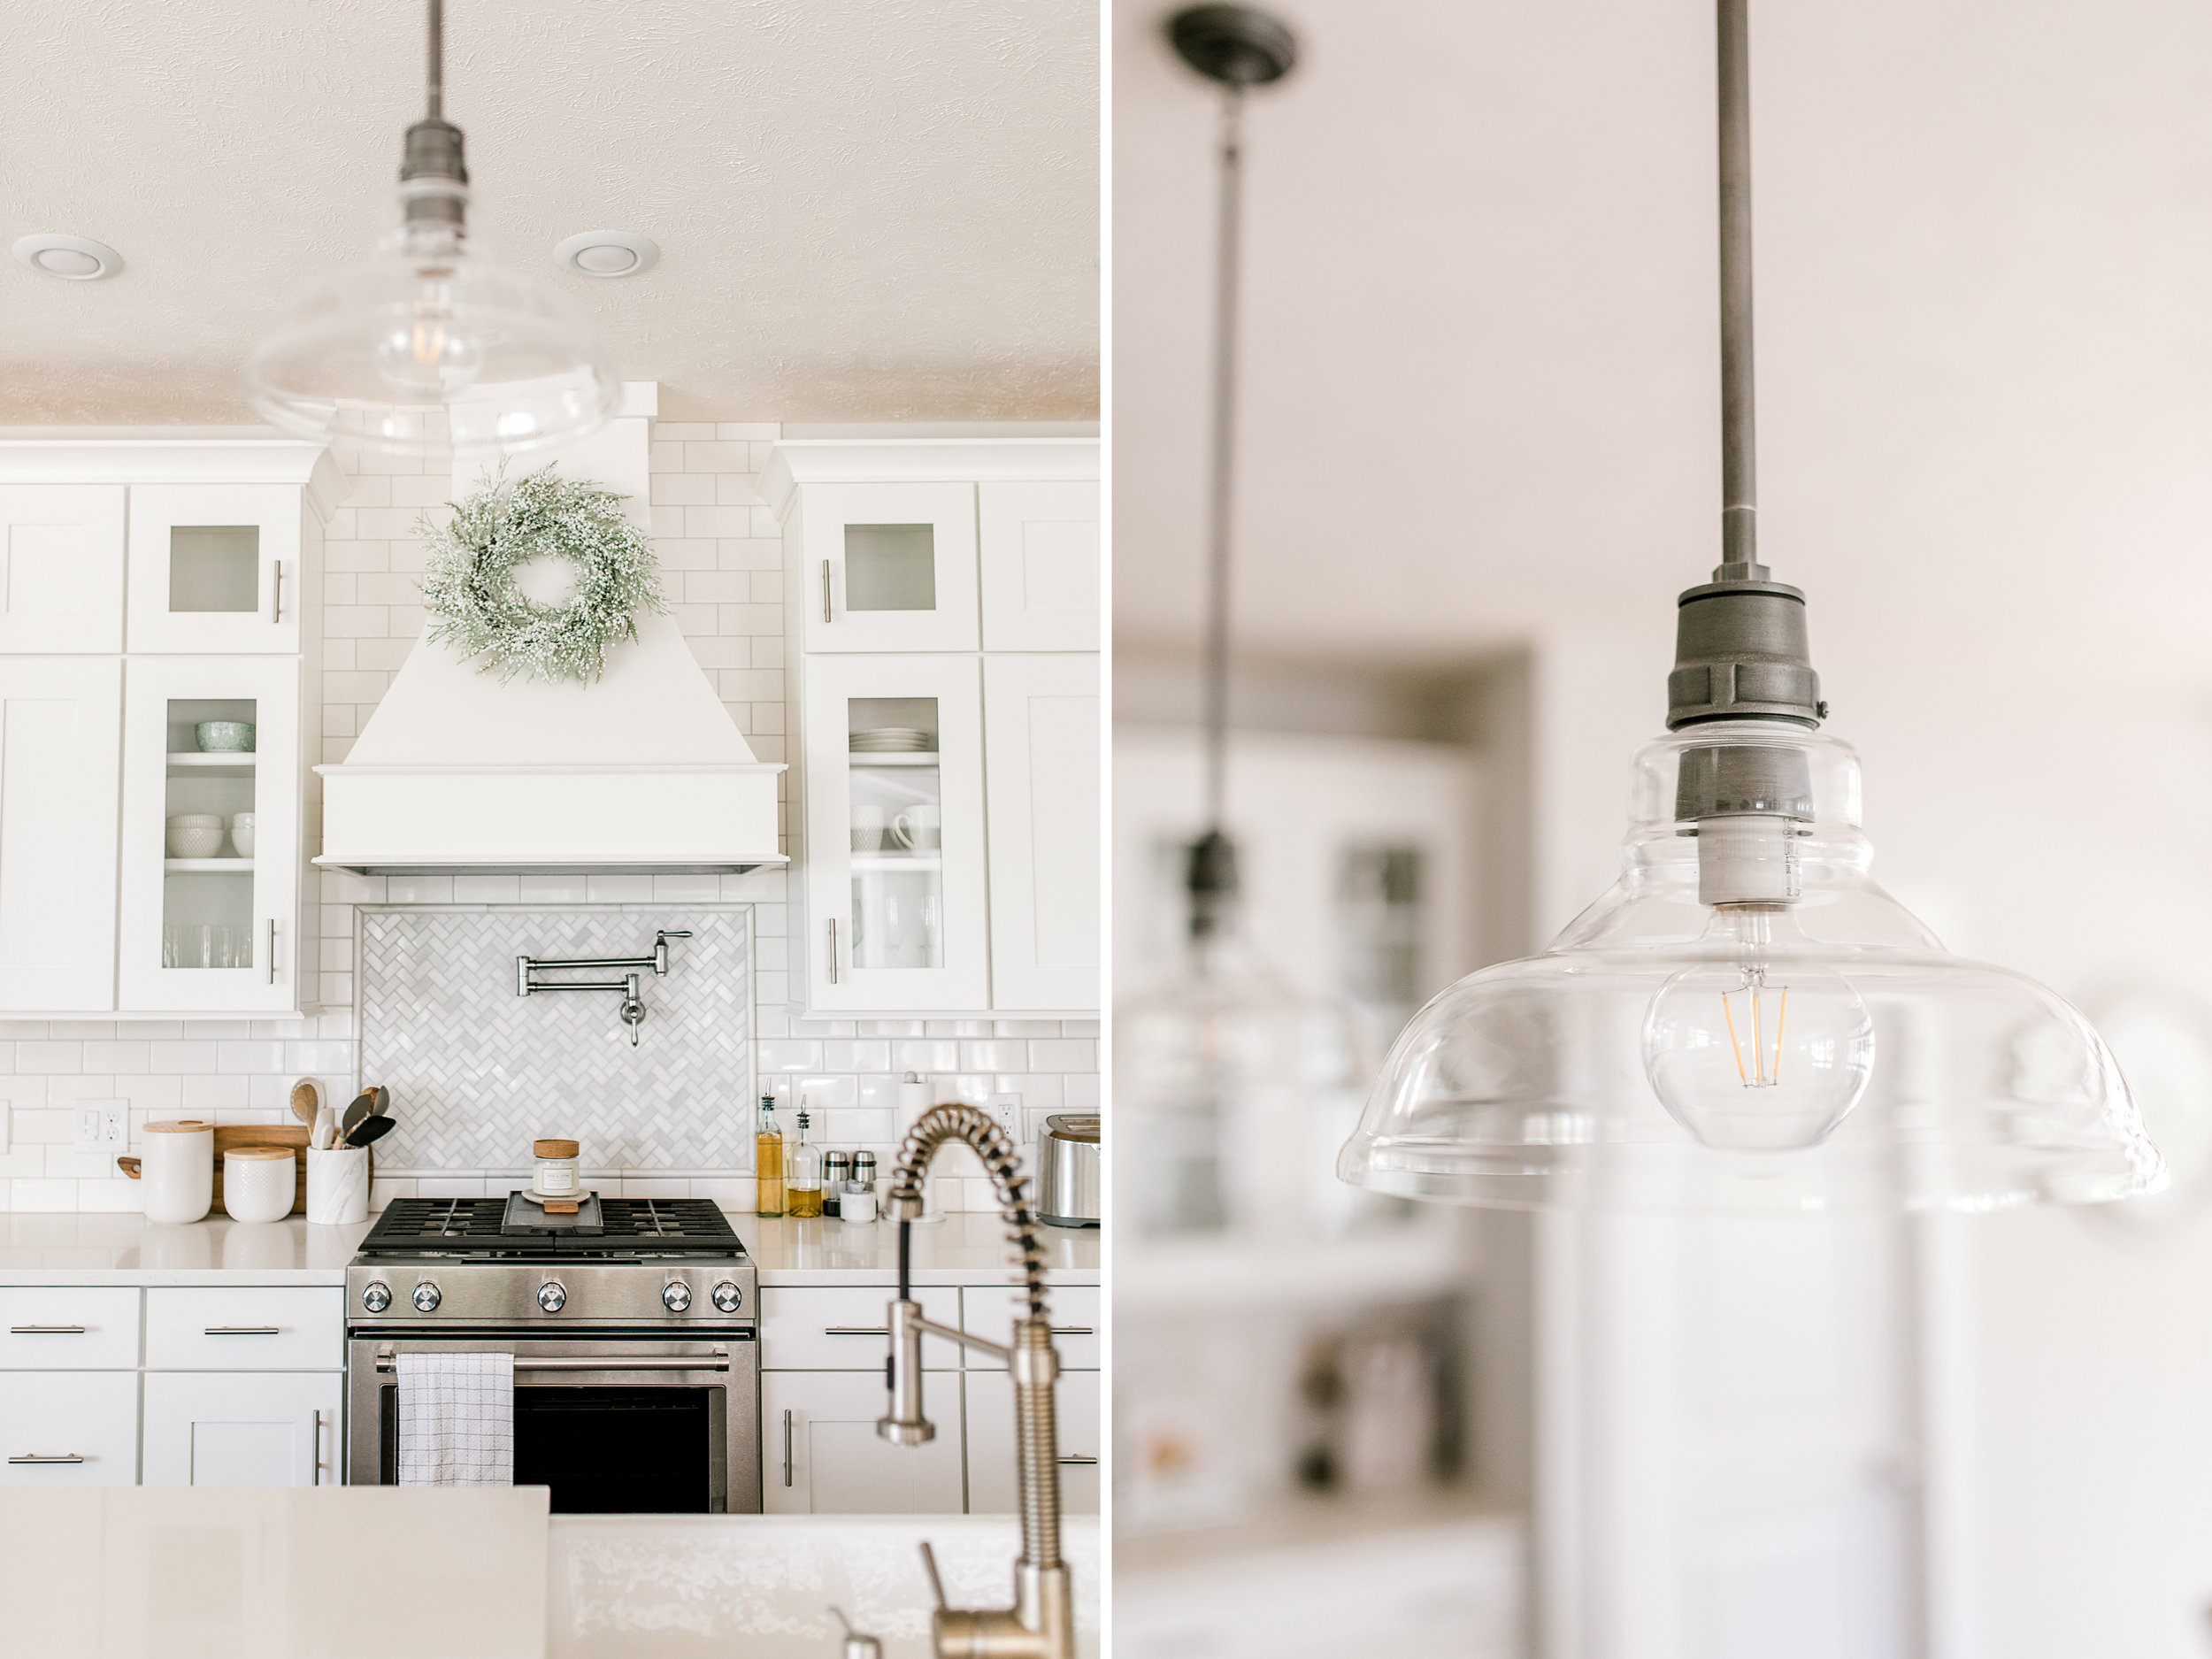 My White Modern Farmhouse Dream Kitchen | Rockford, Michigan ... on modern farmhouse-style, modern kitchen faucet, modern white townhouse, modern white rustic, modern white family, modern white garage, modern white church, modern white log cabin, modern white shed, modern white cottage,